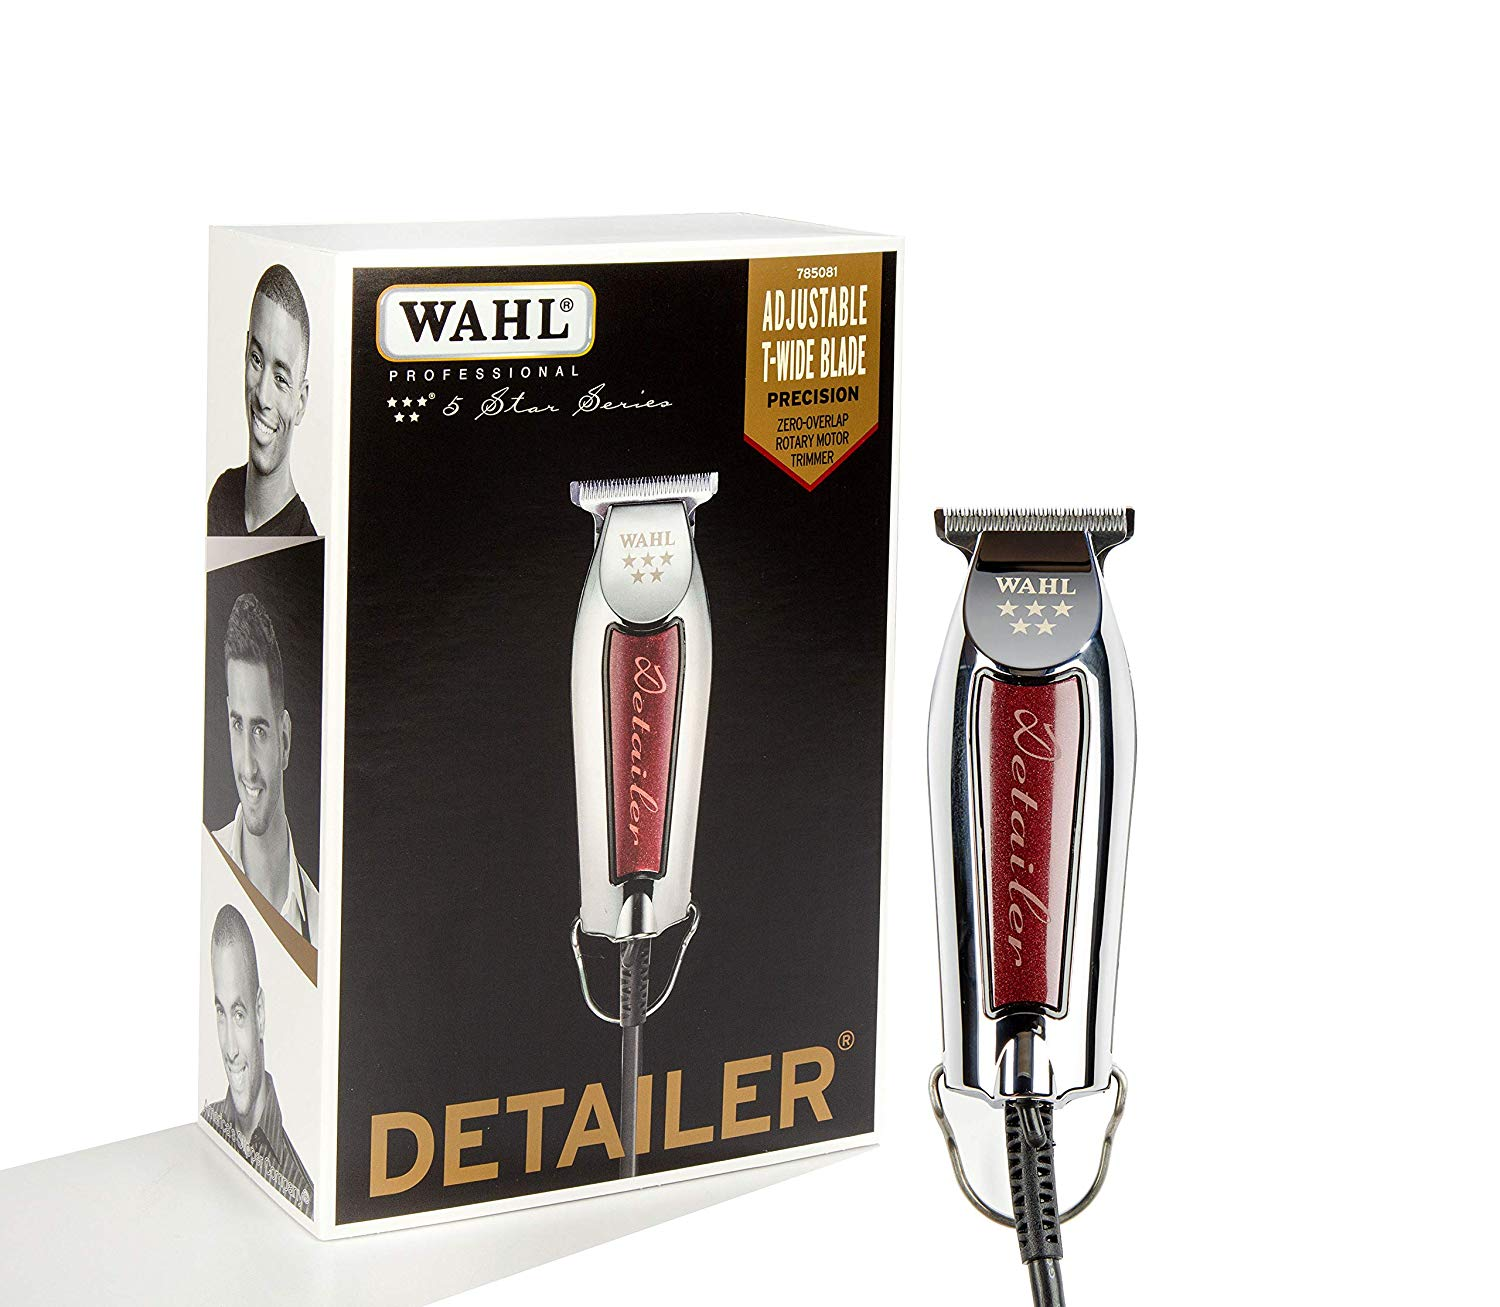 The wahl professional beard trimmer products are the best.